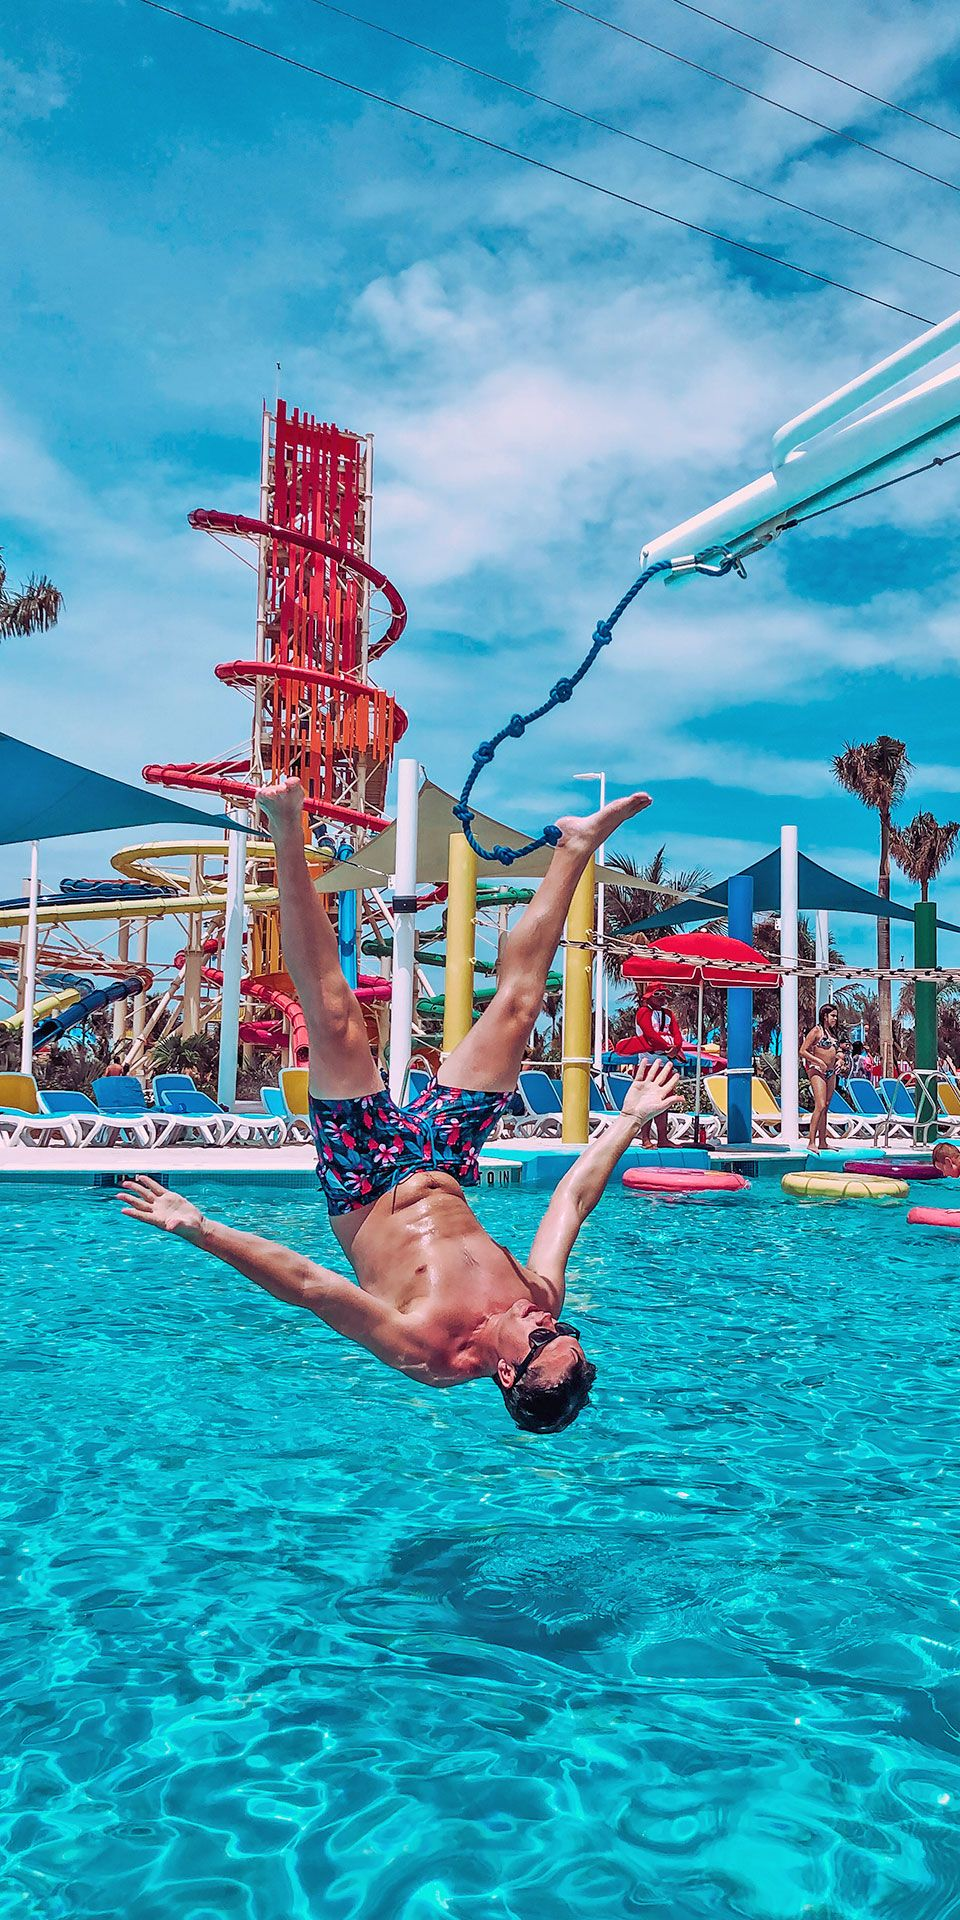 On Site: Perfect Day at CocoCay Is a Robust Island